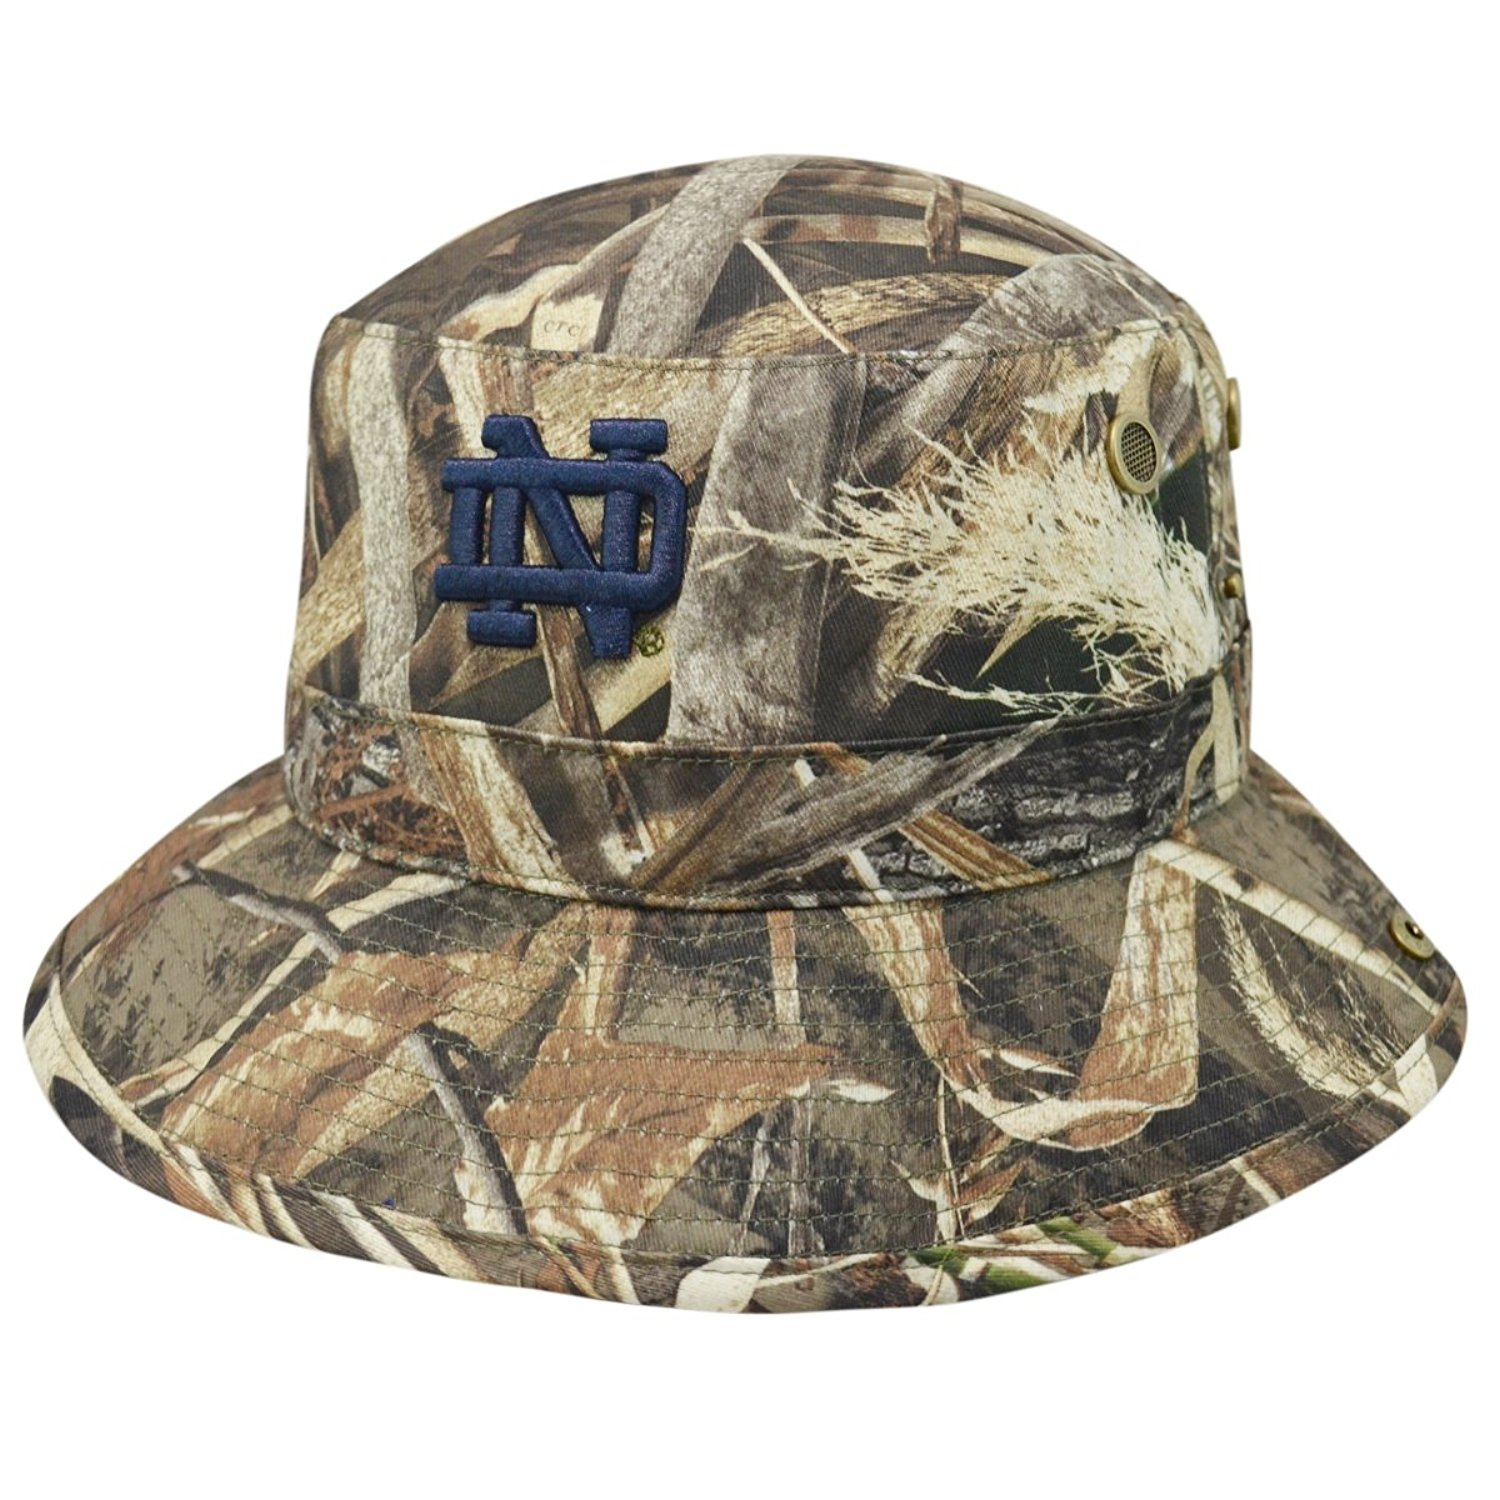 15634764559 Get Quotations · Notre Dame Fighting Irish Bucket Hat Realtree Camo Boonie  Max